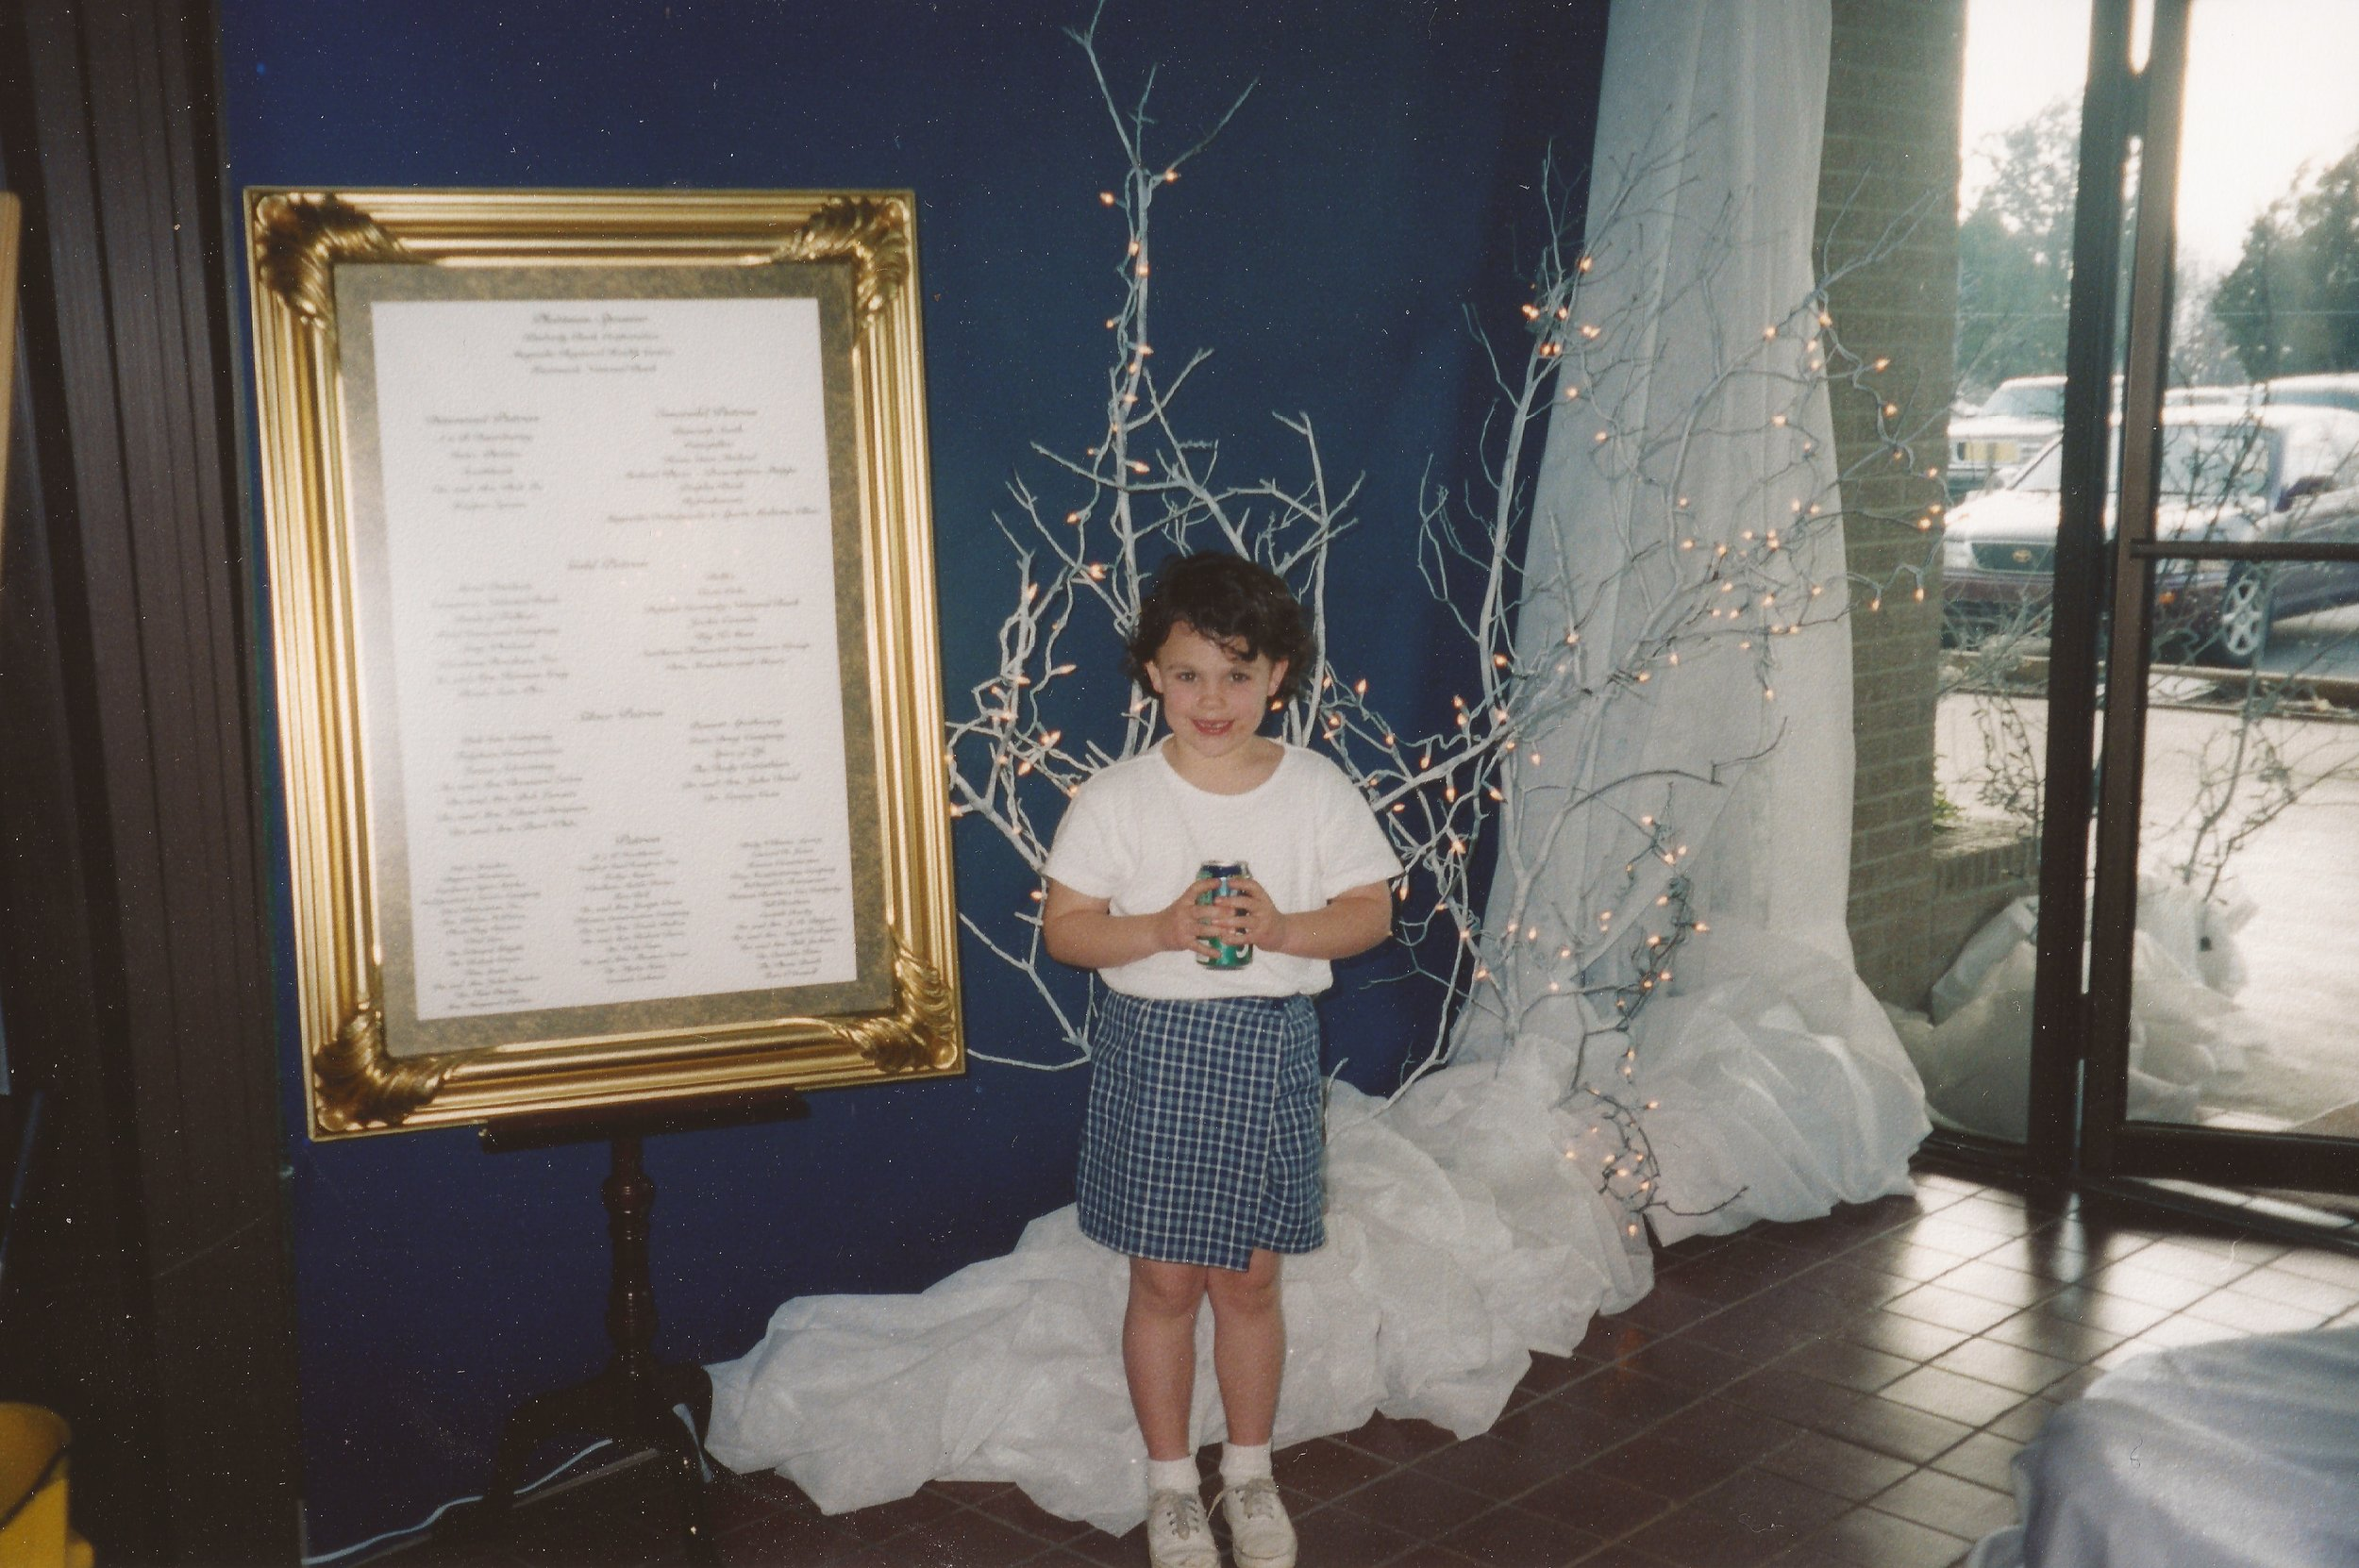 """Helping"" my mom decorate for Charity Ball circa 1999. This was around the time I would have met Abby."